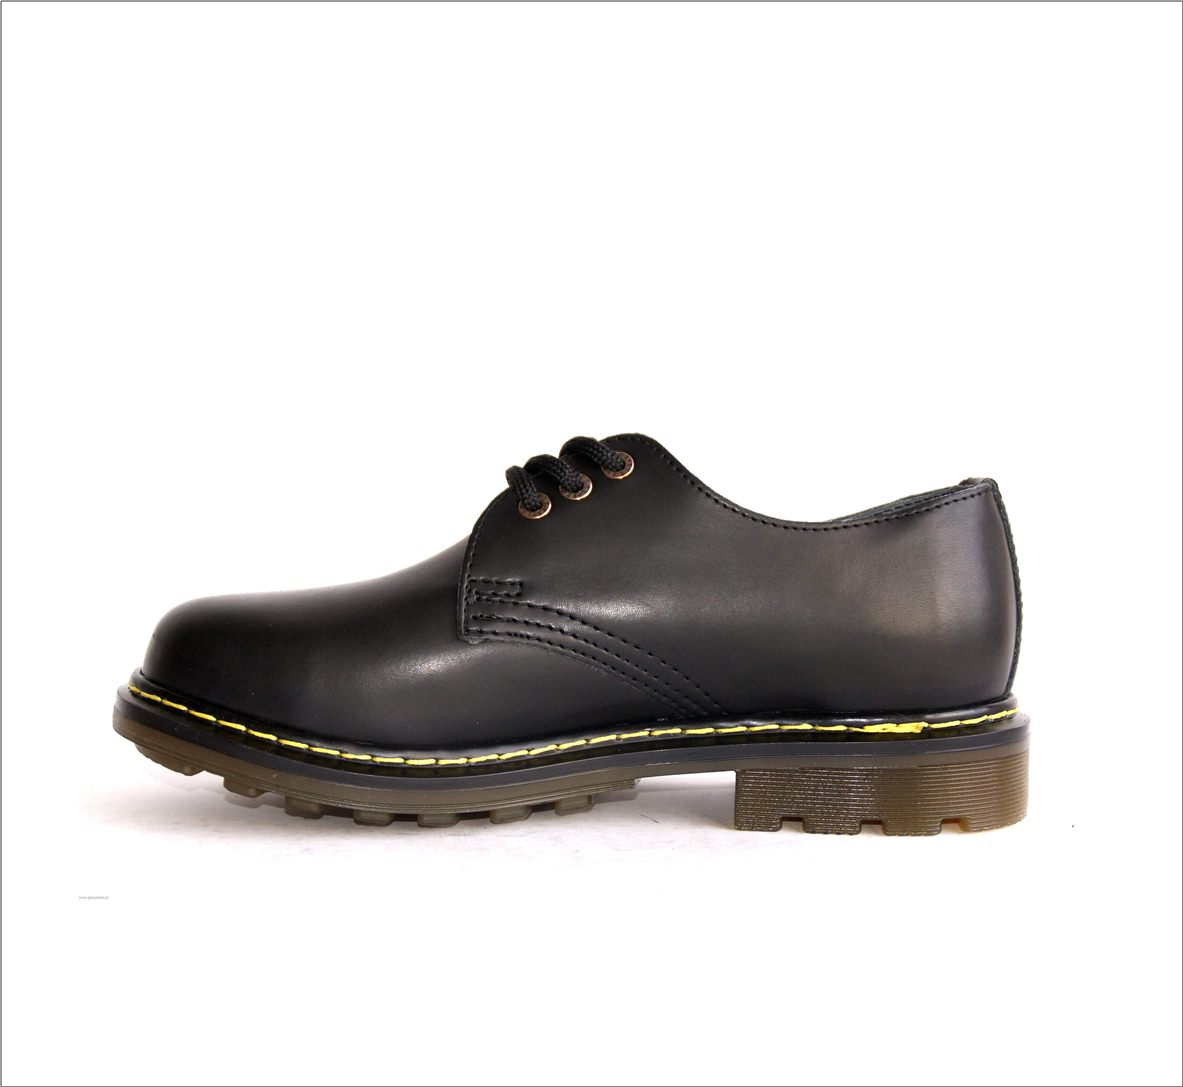 http://oldschoolshoesandboots.bg/clients/128/images/catalog/products/8762a5868c3ed650_3.jpg